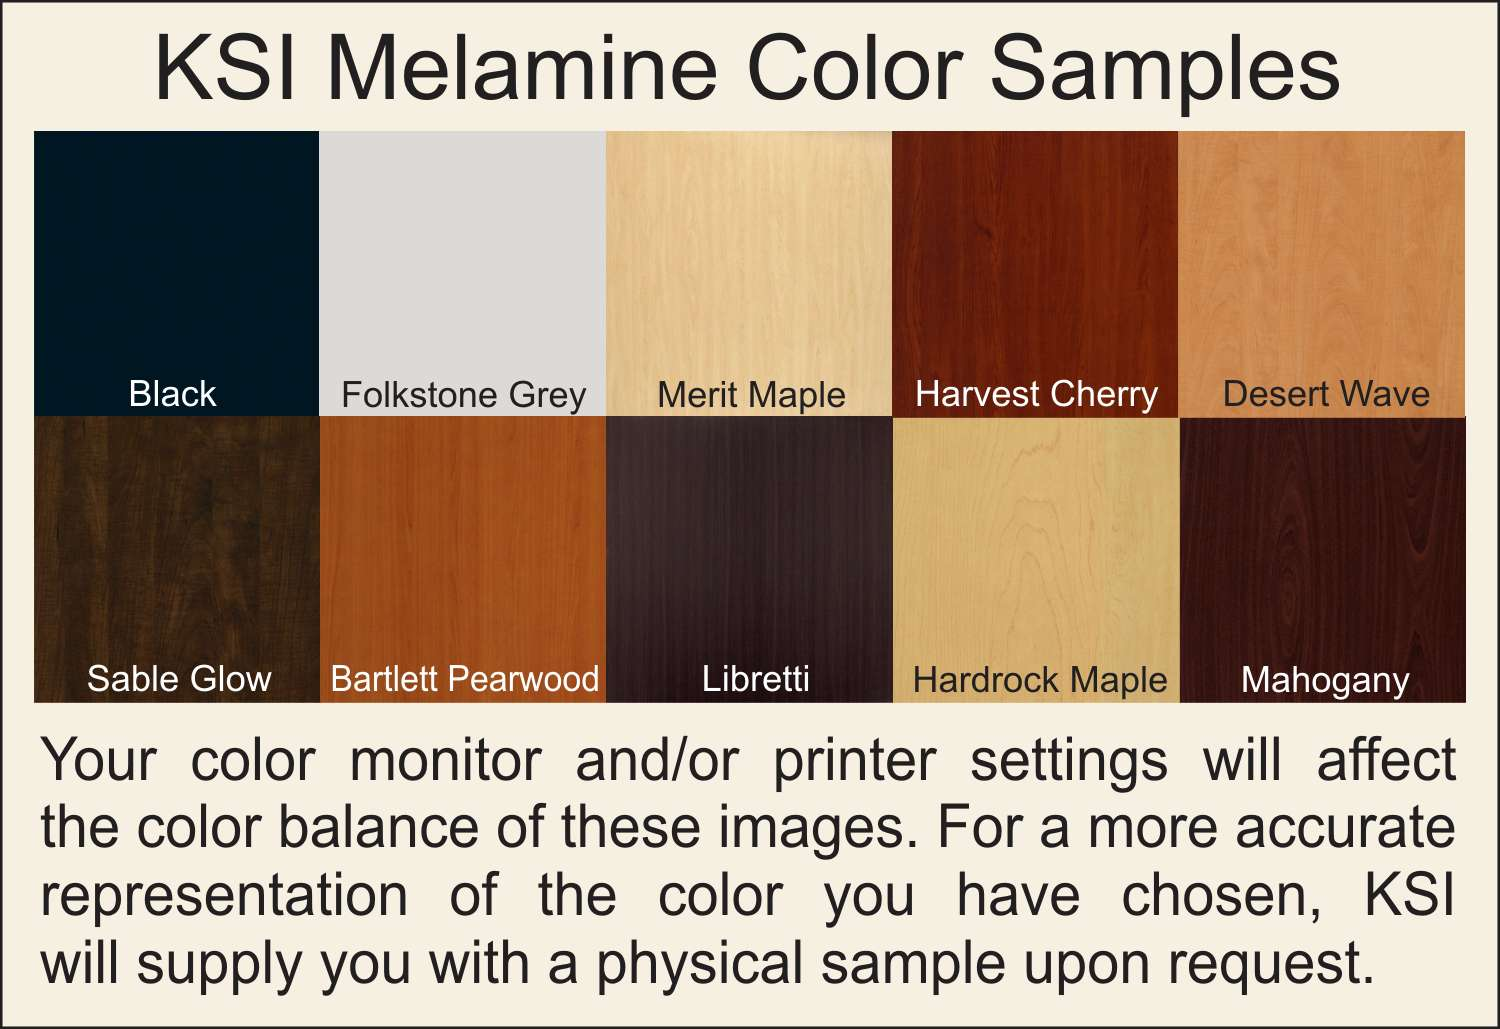 Color Samples for Melamine